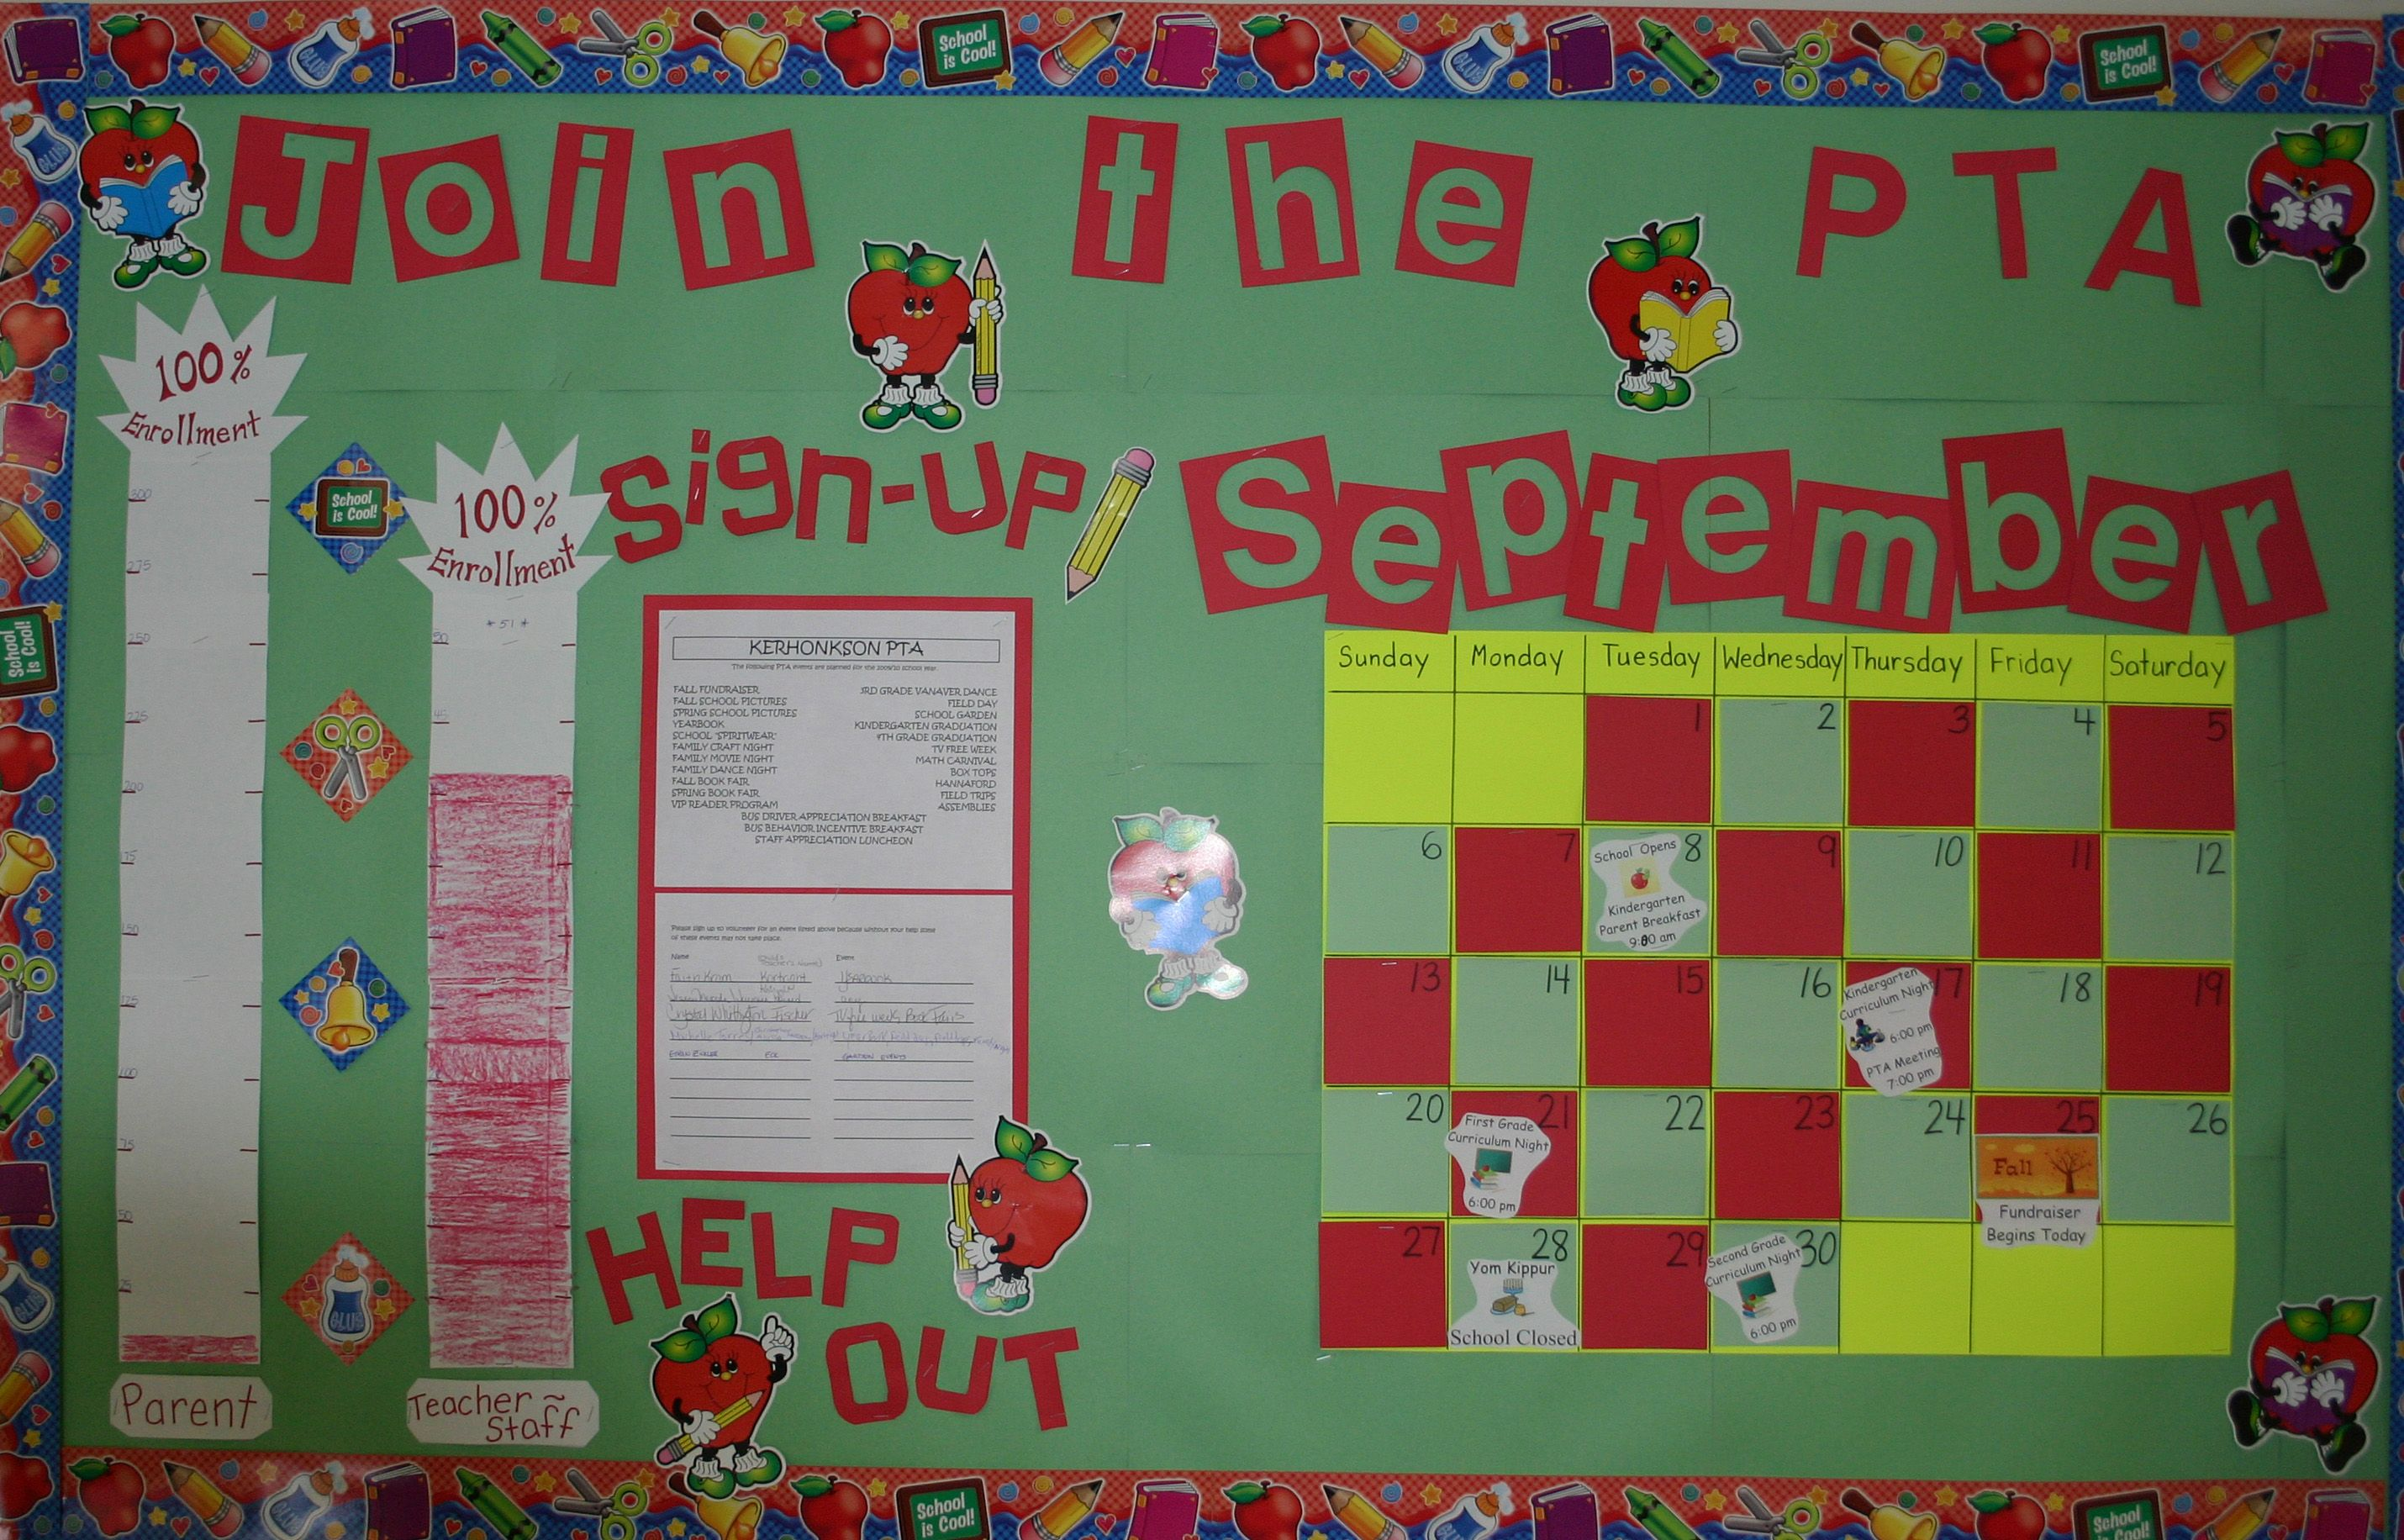 Calendar Monthly Basis : The pta bulletin board updated on a monthly basis